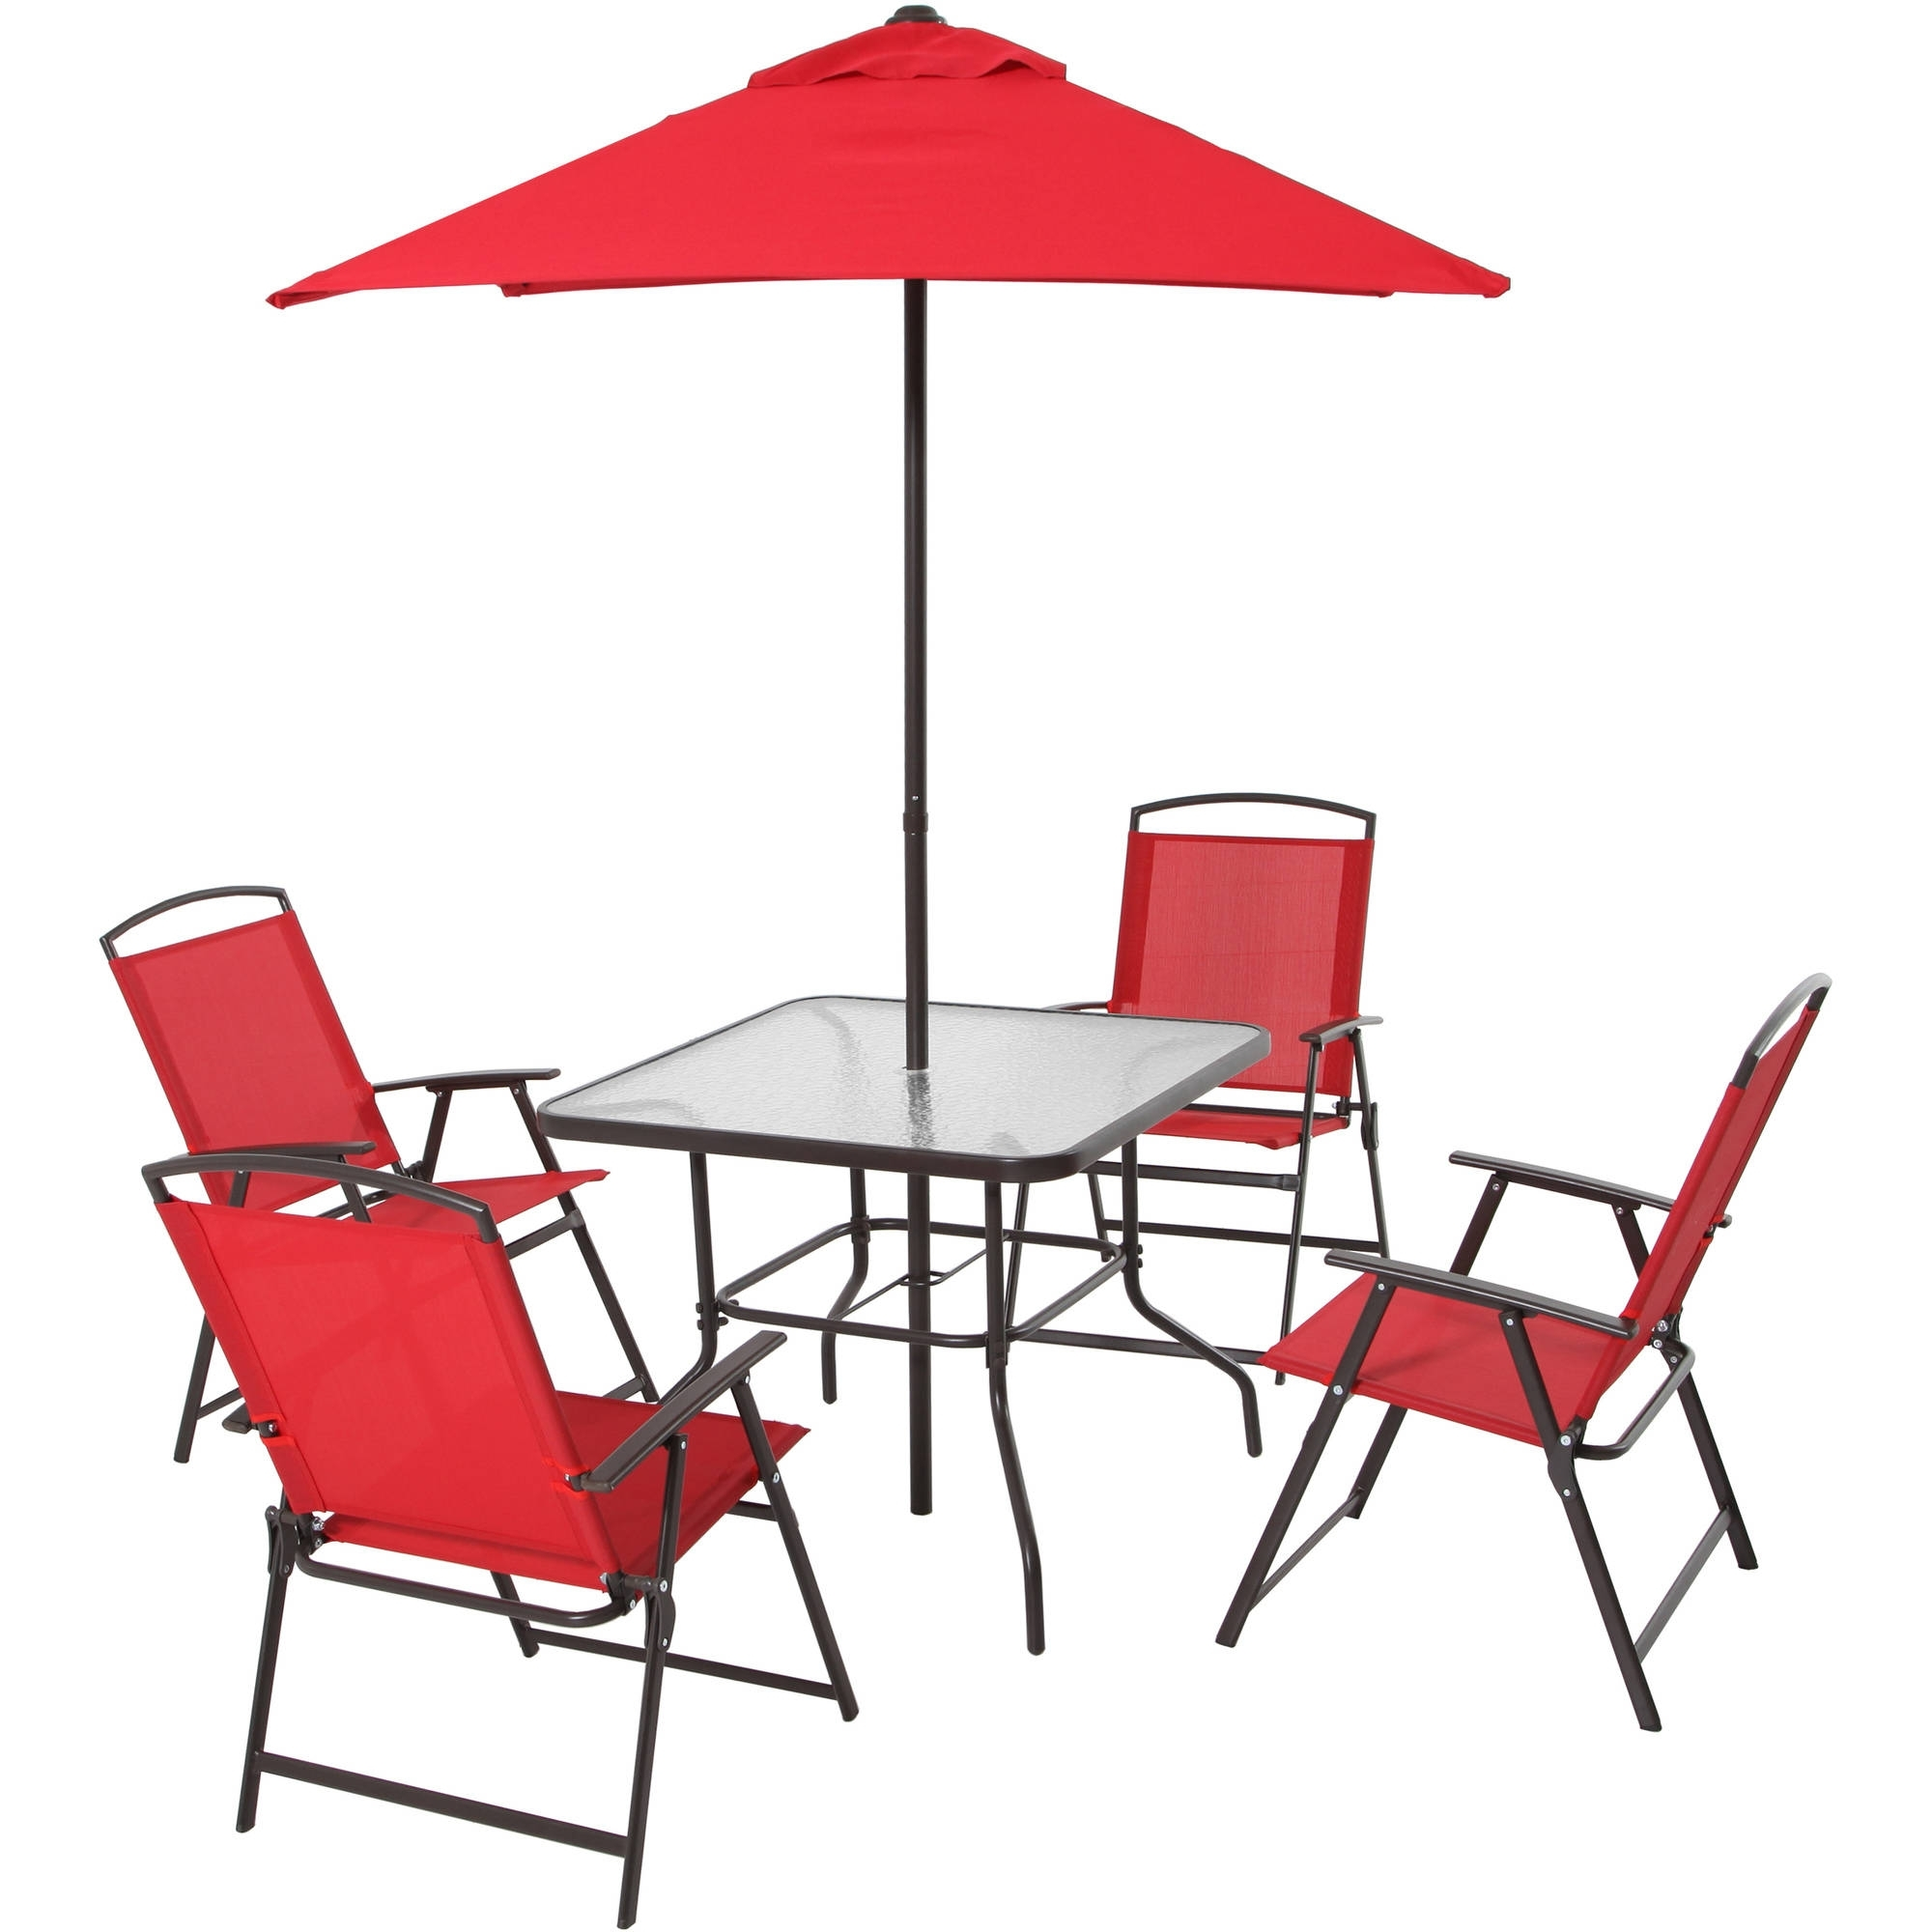 Patio Dining Set Folding Chairs Outdoor Furniture Metal Frame Throughout Most Popular Patio Table And Chairs With Umbrellas (Gallery 15 of 20)